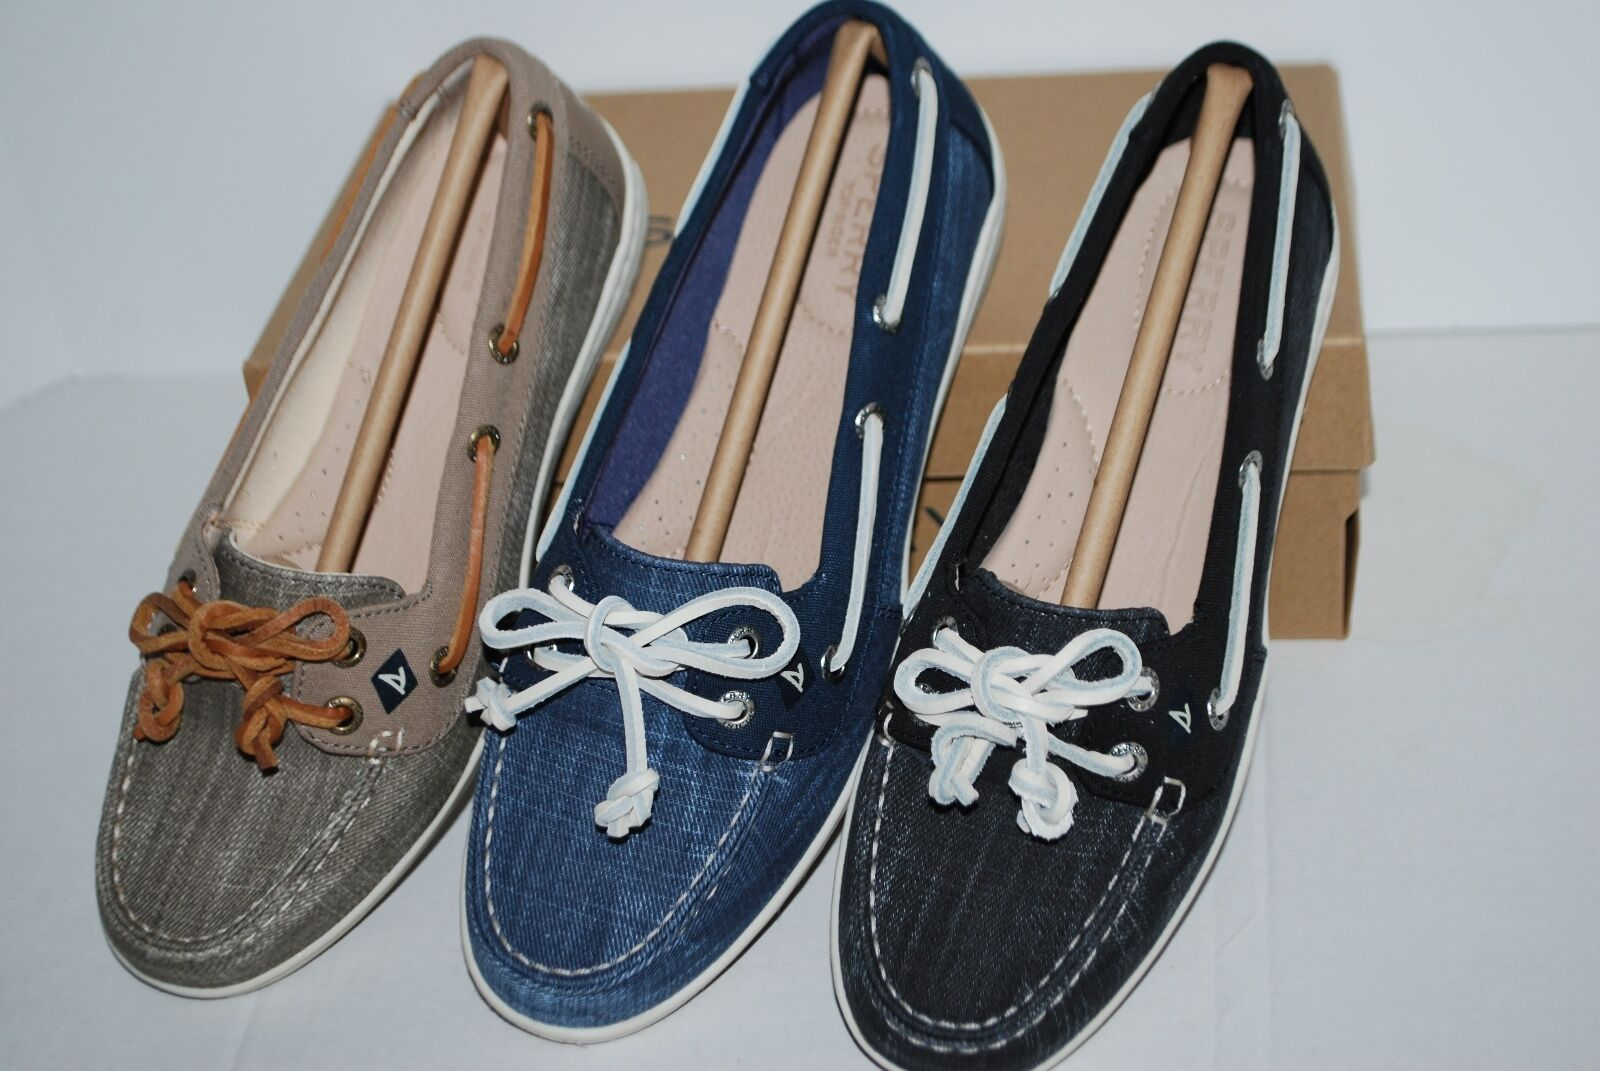 NIB SPERRY FIREFISH RIPSTOP BLACK NAVY TAUPE 6.5 7 8 BOAT 9 10 WMN LOAFERS BOAT 8 SHOES 50b2eb